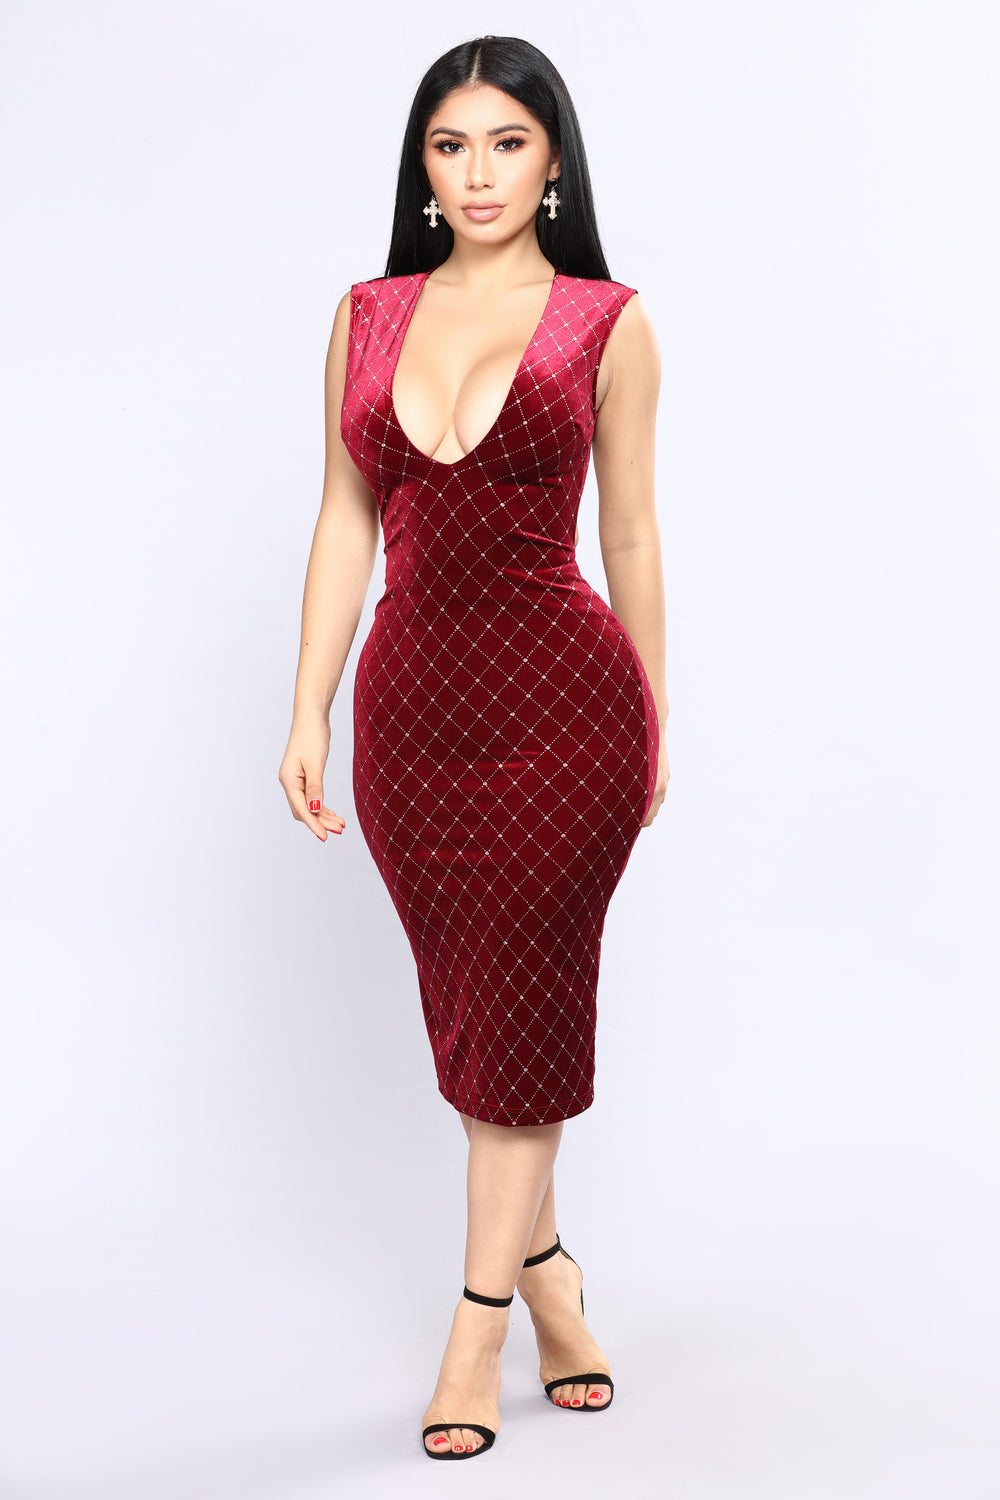 That Spark Velvet Dress - Burgundy